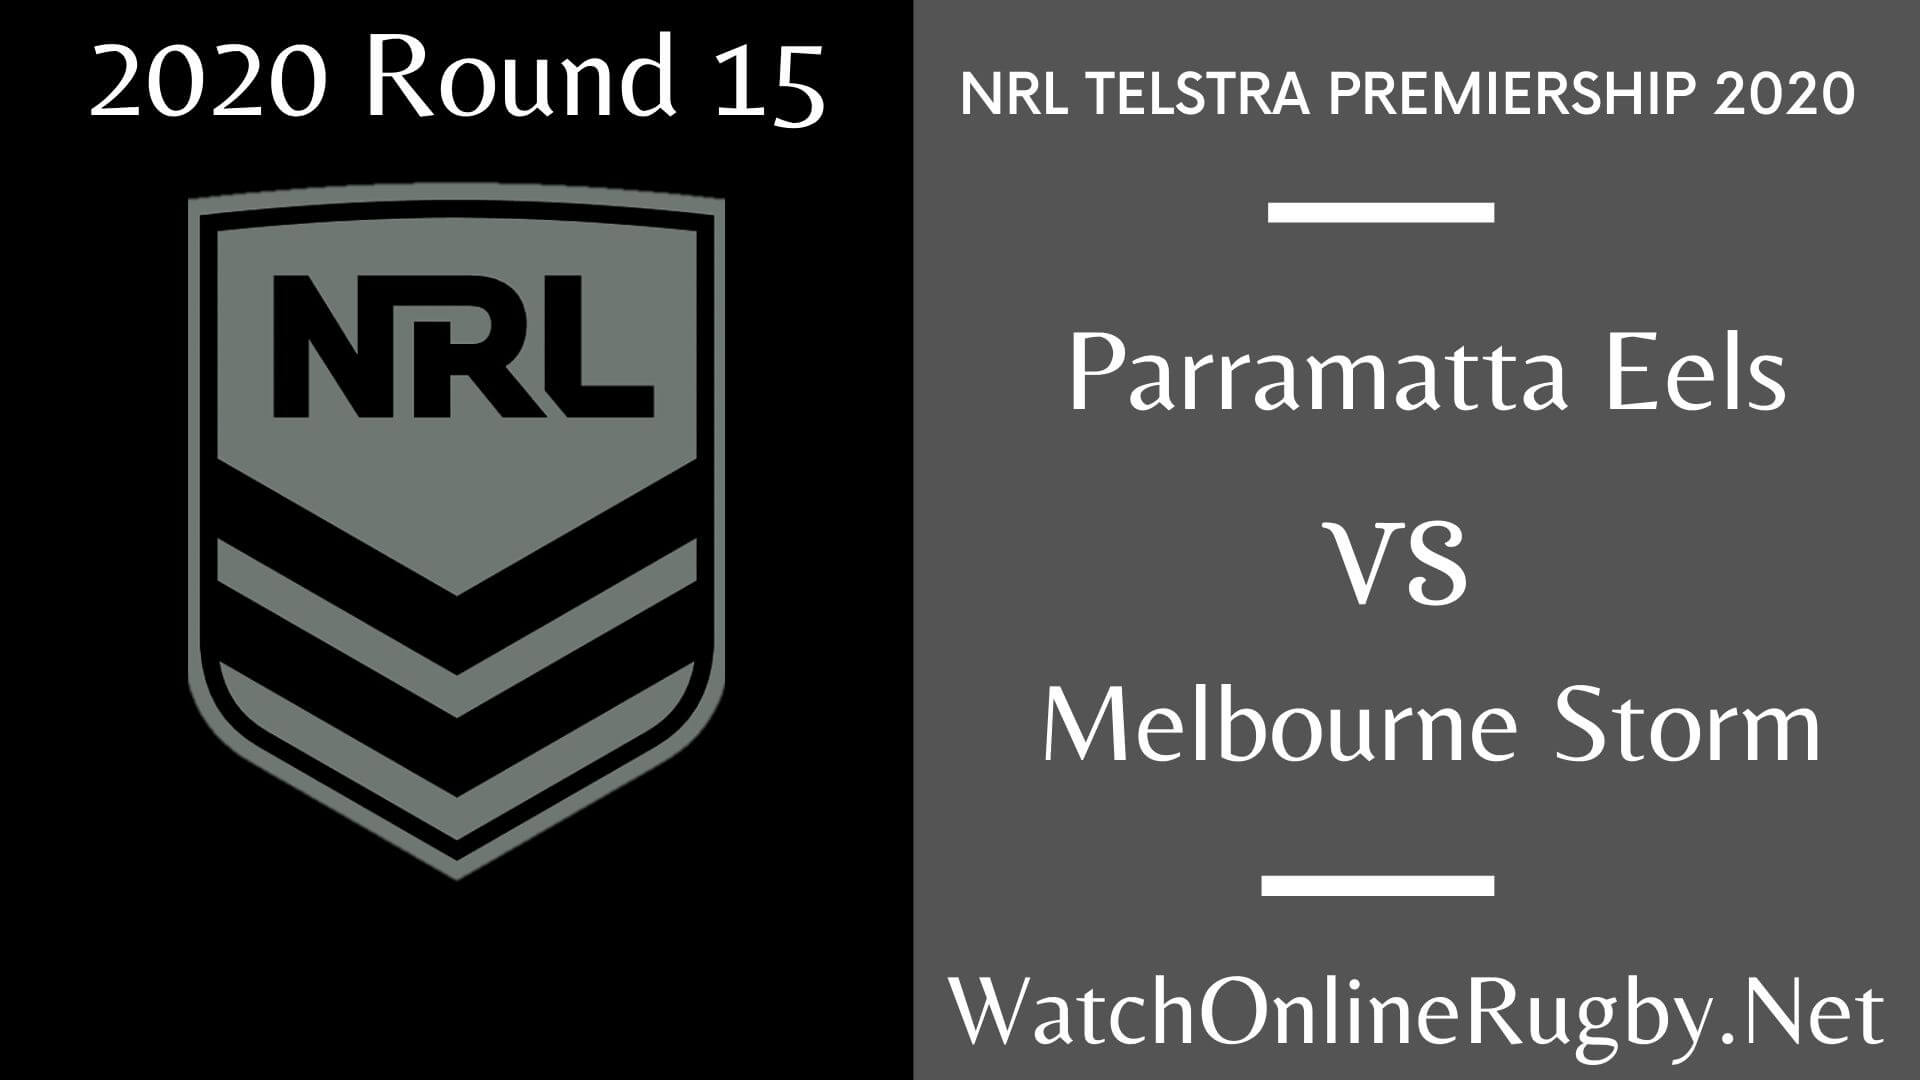 Eels Vs Storm Highlights Rd 15 NRL Rugby